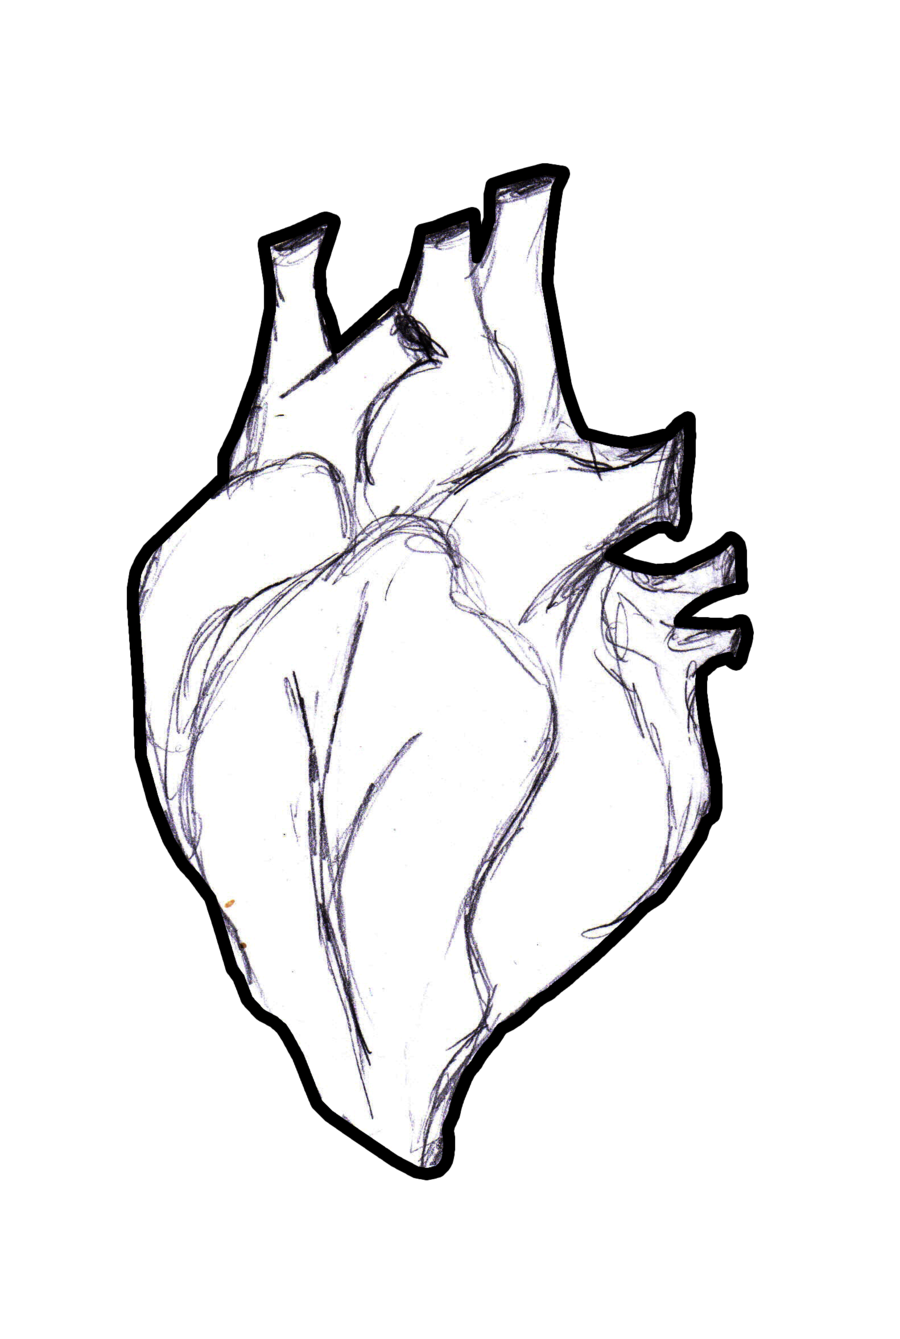 900x1339 Human Heart Outlined By Thestrange87